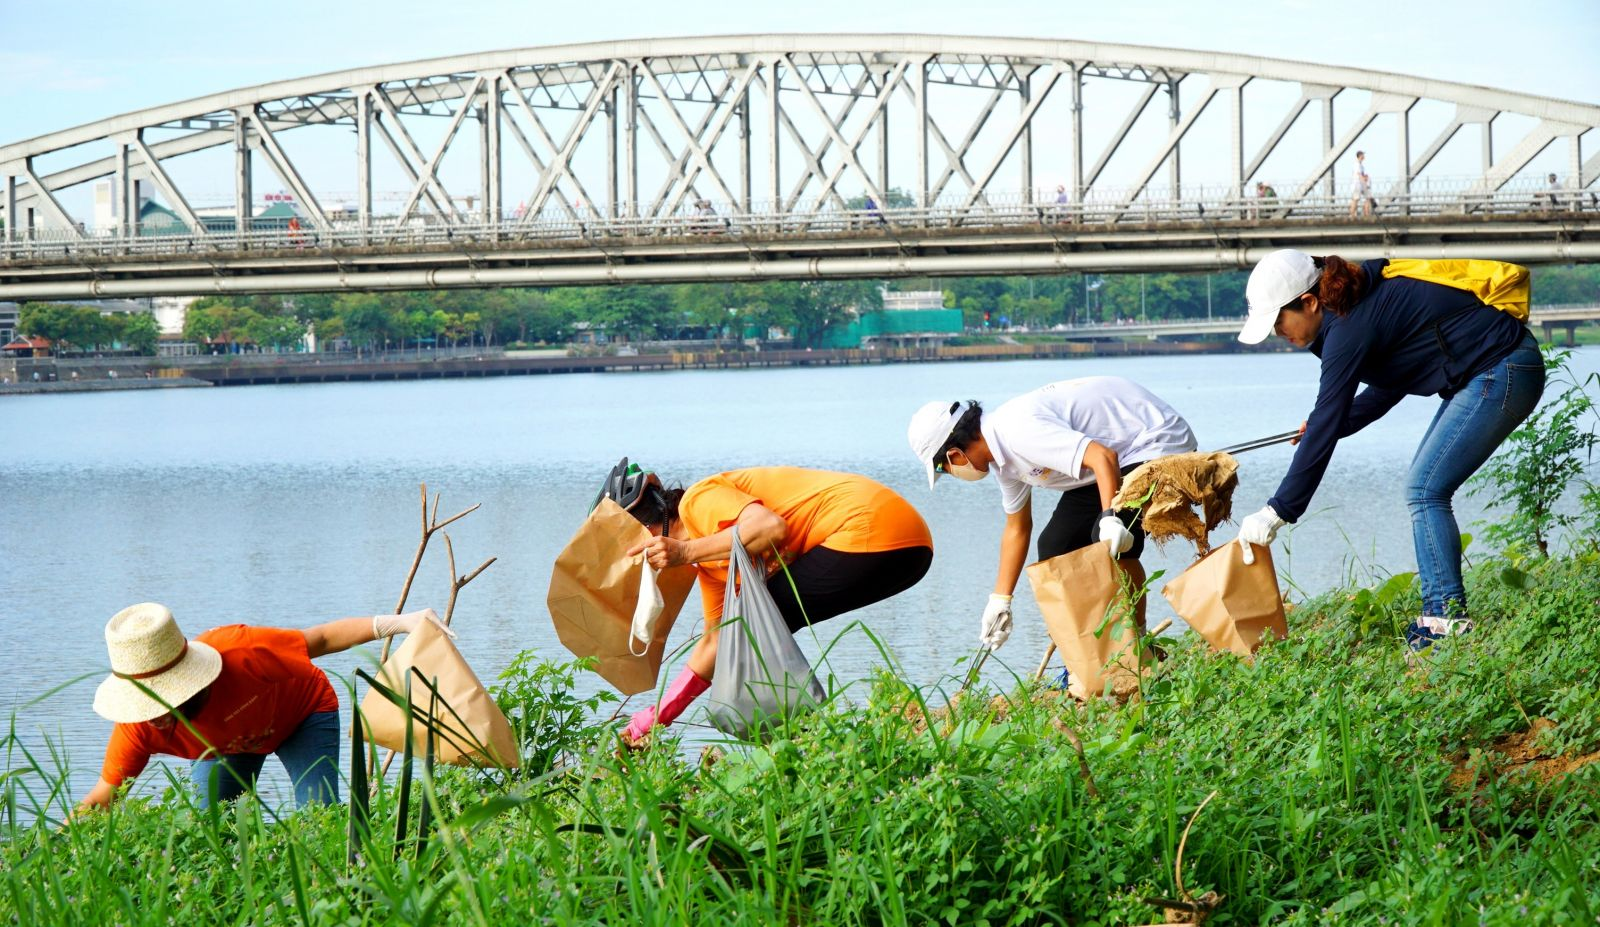 After cycling through Truong Tien Bridge, the delegation stopped to collect garbage at Chuong Duong wharf ...